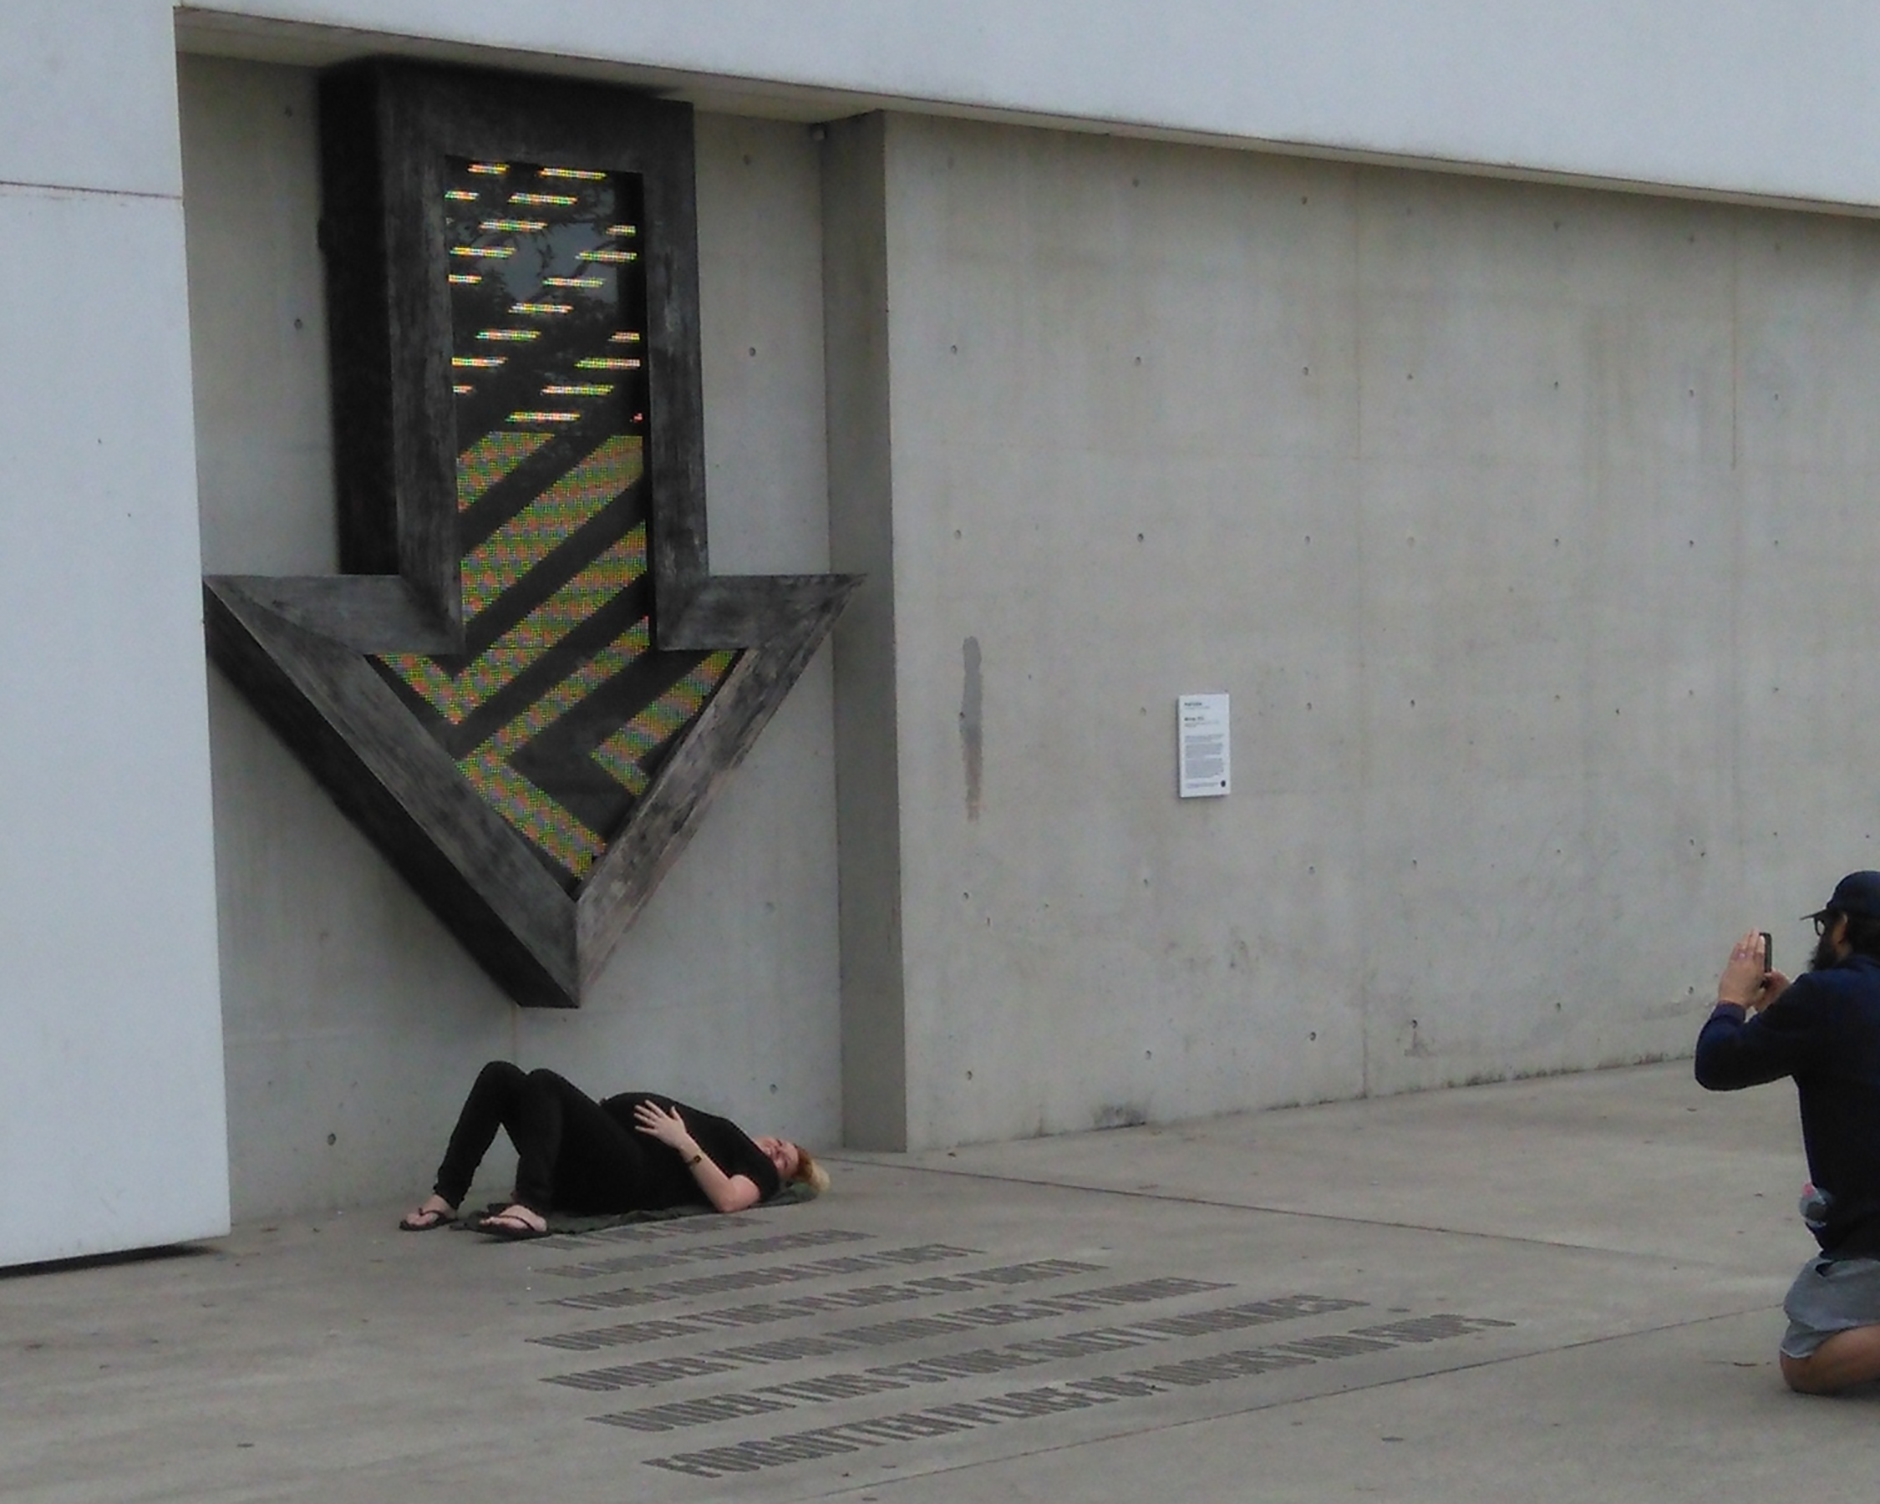 A woman lies unable to move after coming into contact with the pulsating LED arrow in Brook Andrew's Warrang, 2012 outside the Museum of Contemporary Art Australia. A man photographs her with his smartphone.